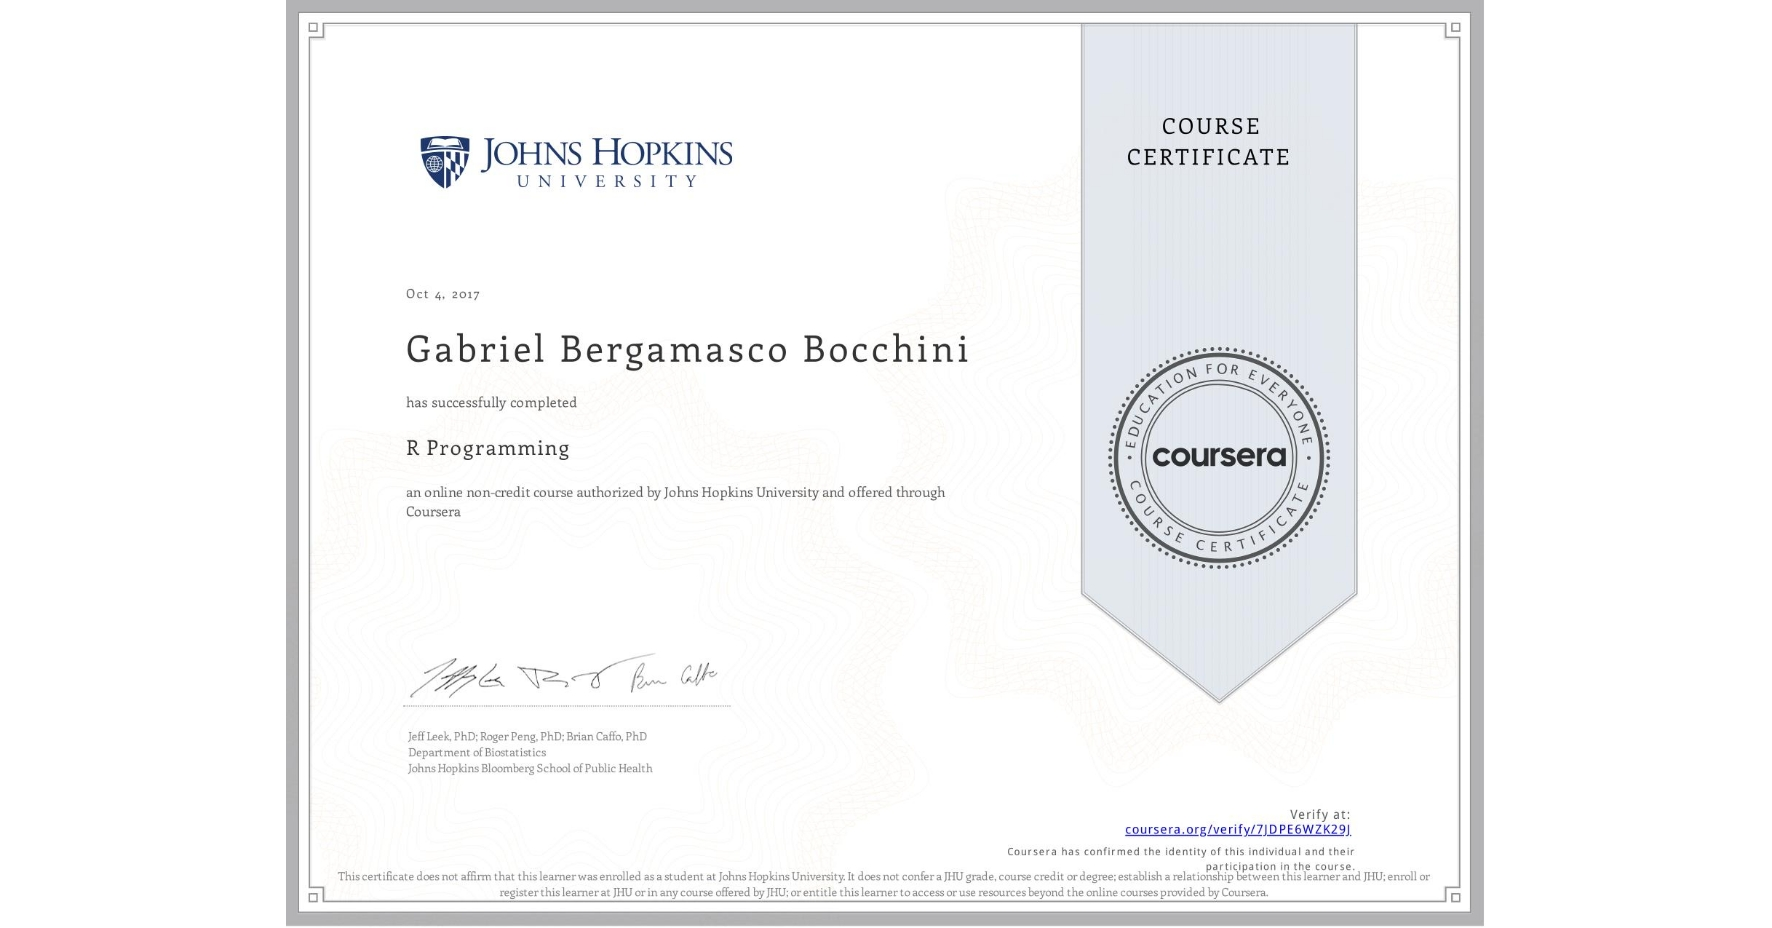 View certificate for Gabriel Bergamasco Bocchini, R Programming, an online non-credit course authorized by Johns Hopkins University and offered through Coursera